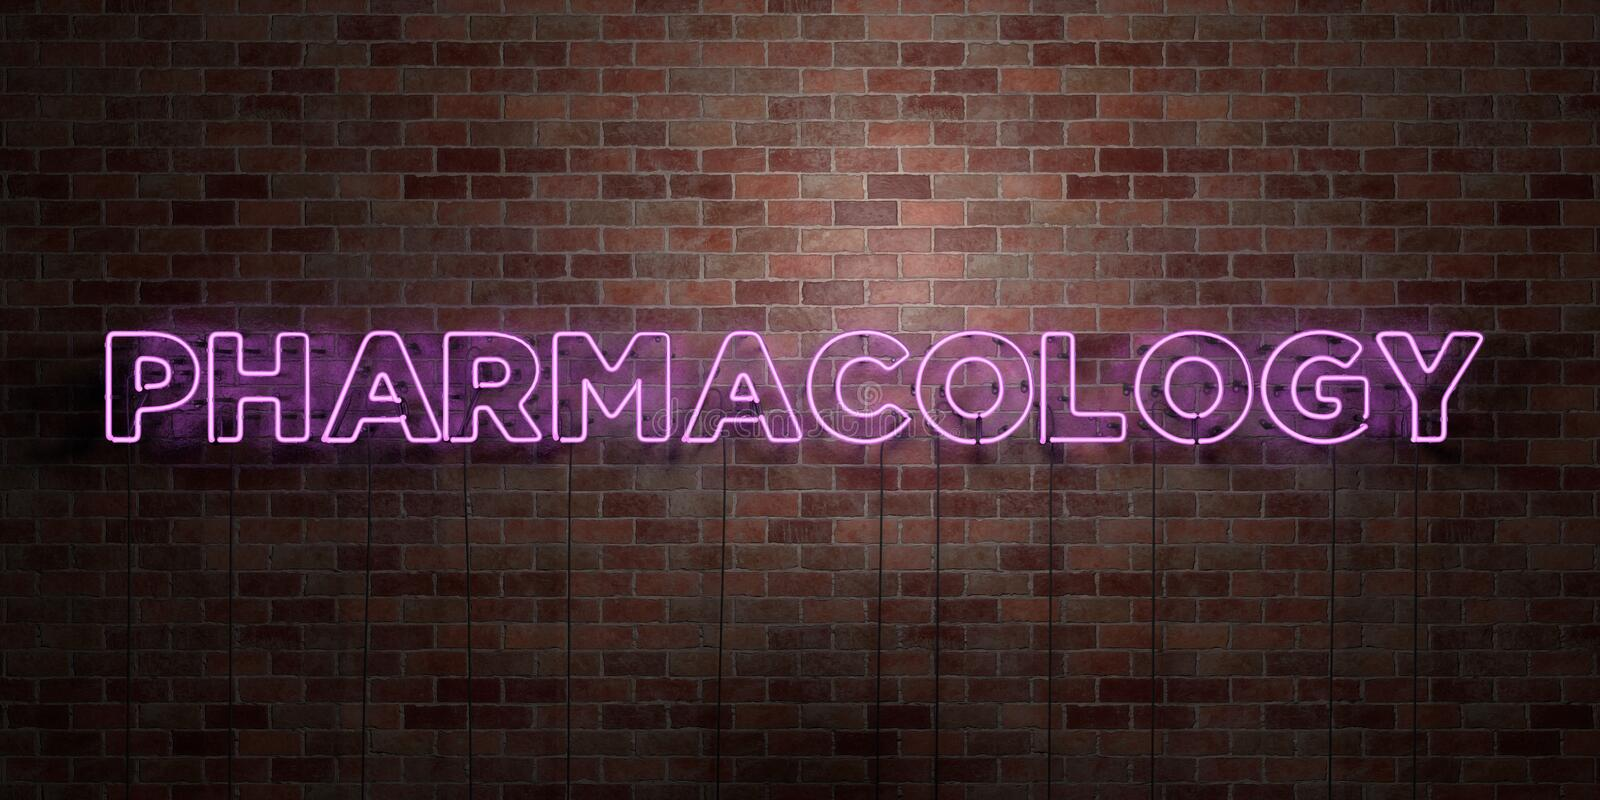 PHARMACOLOGY - fluorescent Neon tube Sign on brickwork - Front view - 3D rendered royalty free stock picture. Can be used for online banner ads and direct vector illustration